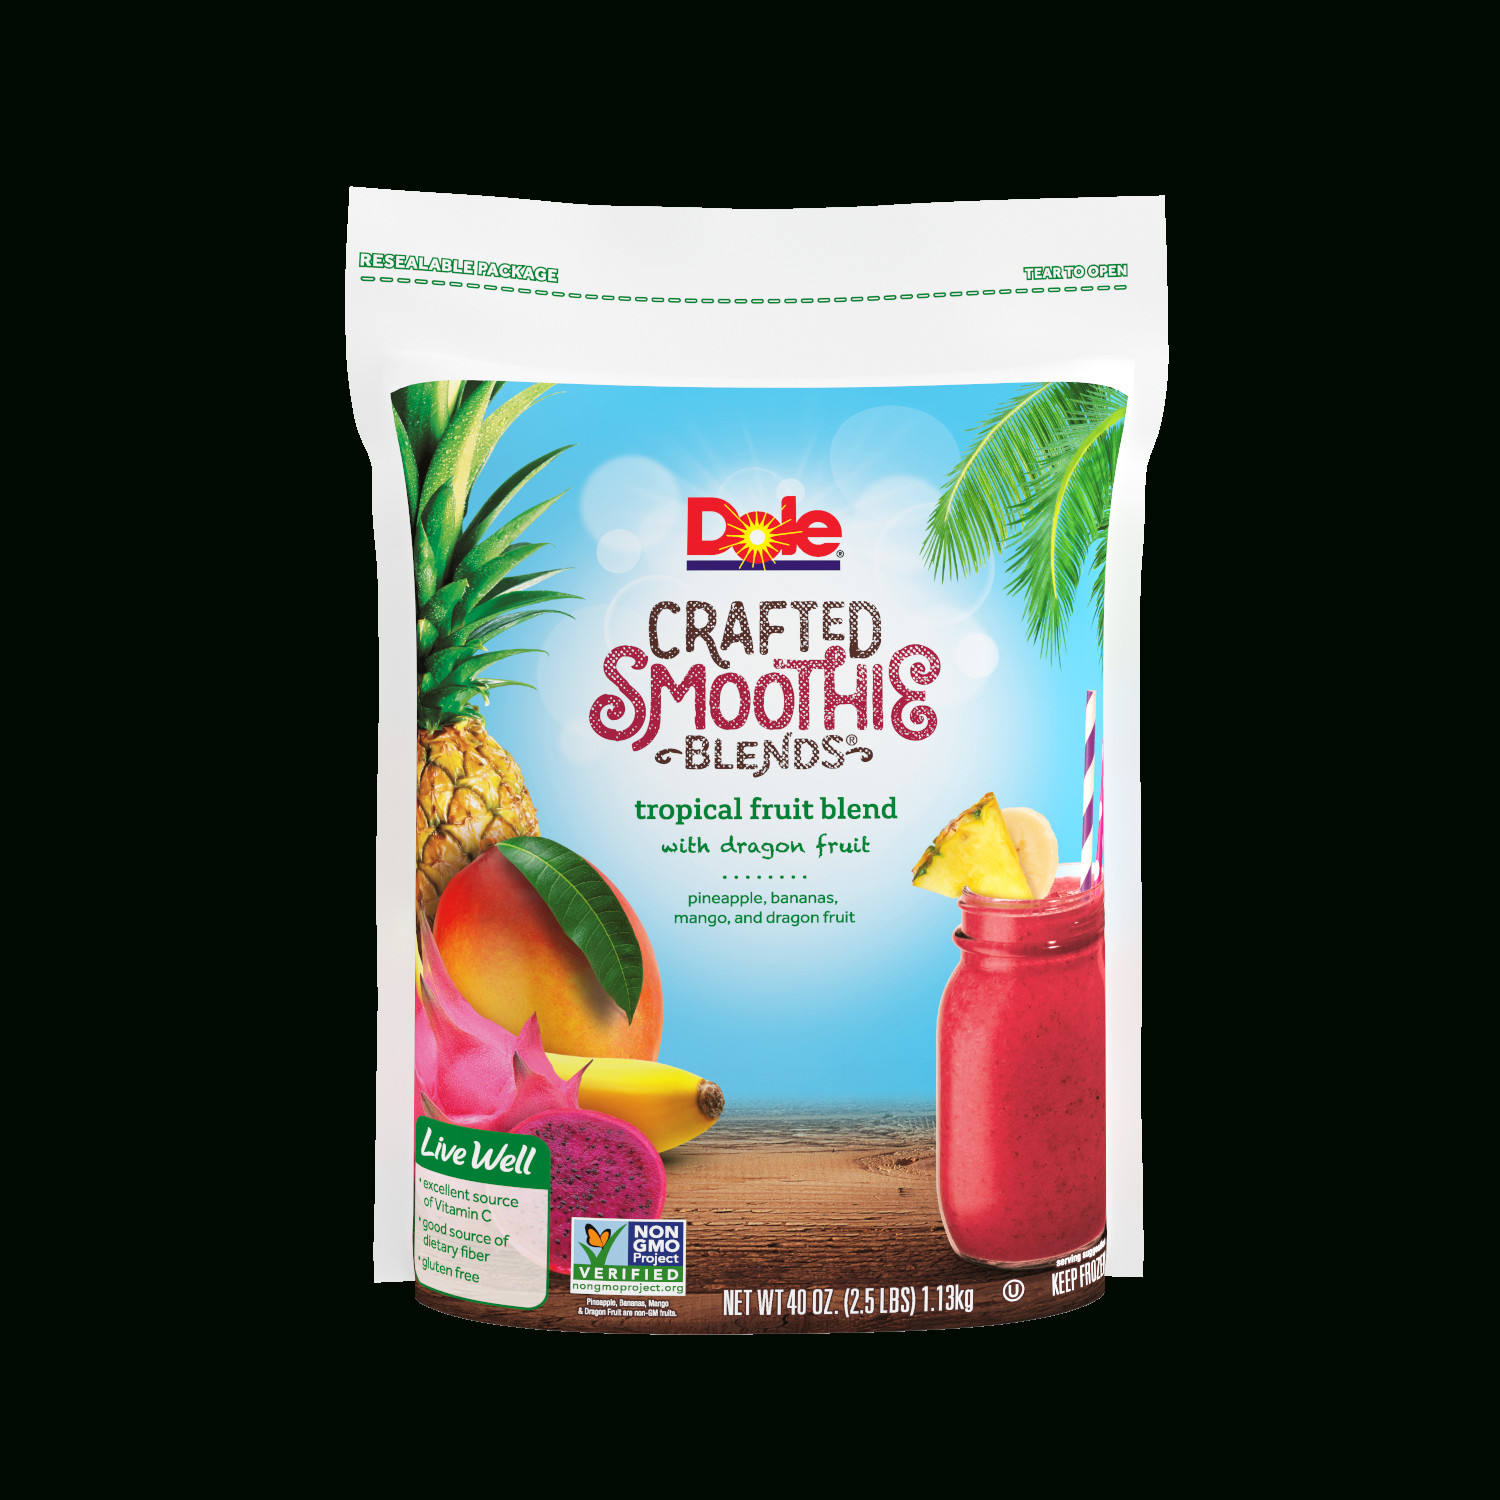 Dole Crafted Smoothie Blends, Tropical Fruit Blend With Dragon Fruit, 40 Oz. ( (View 12 of 20)